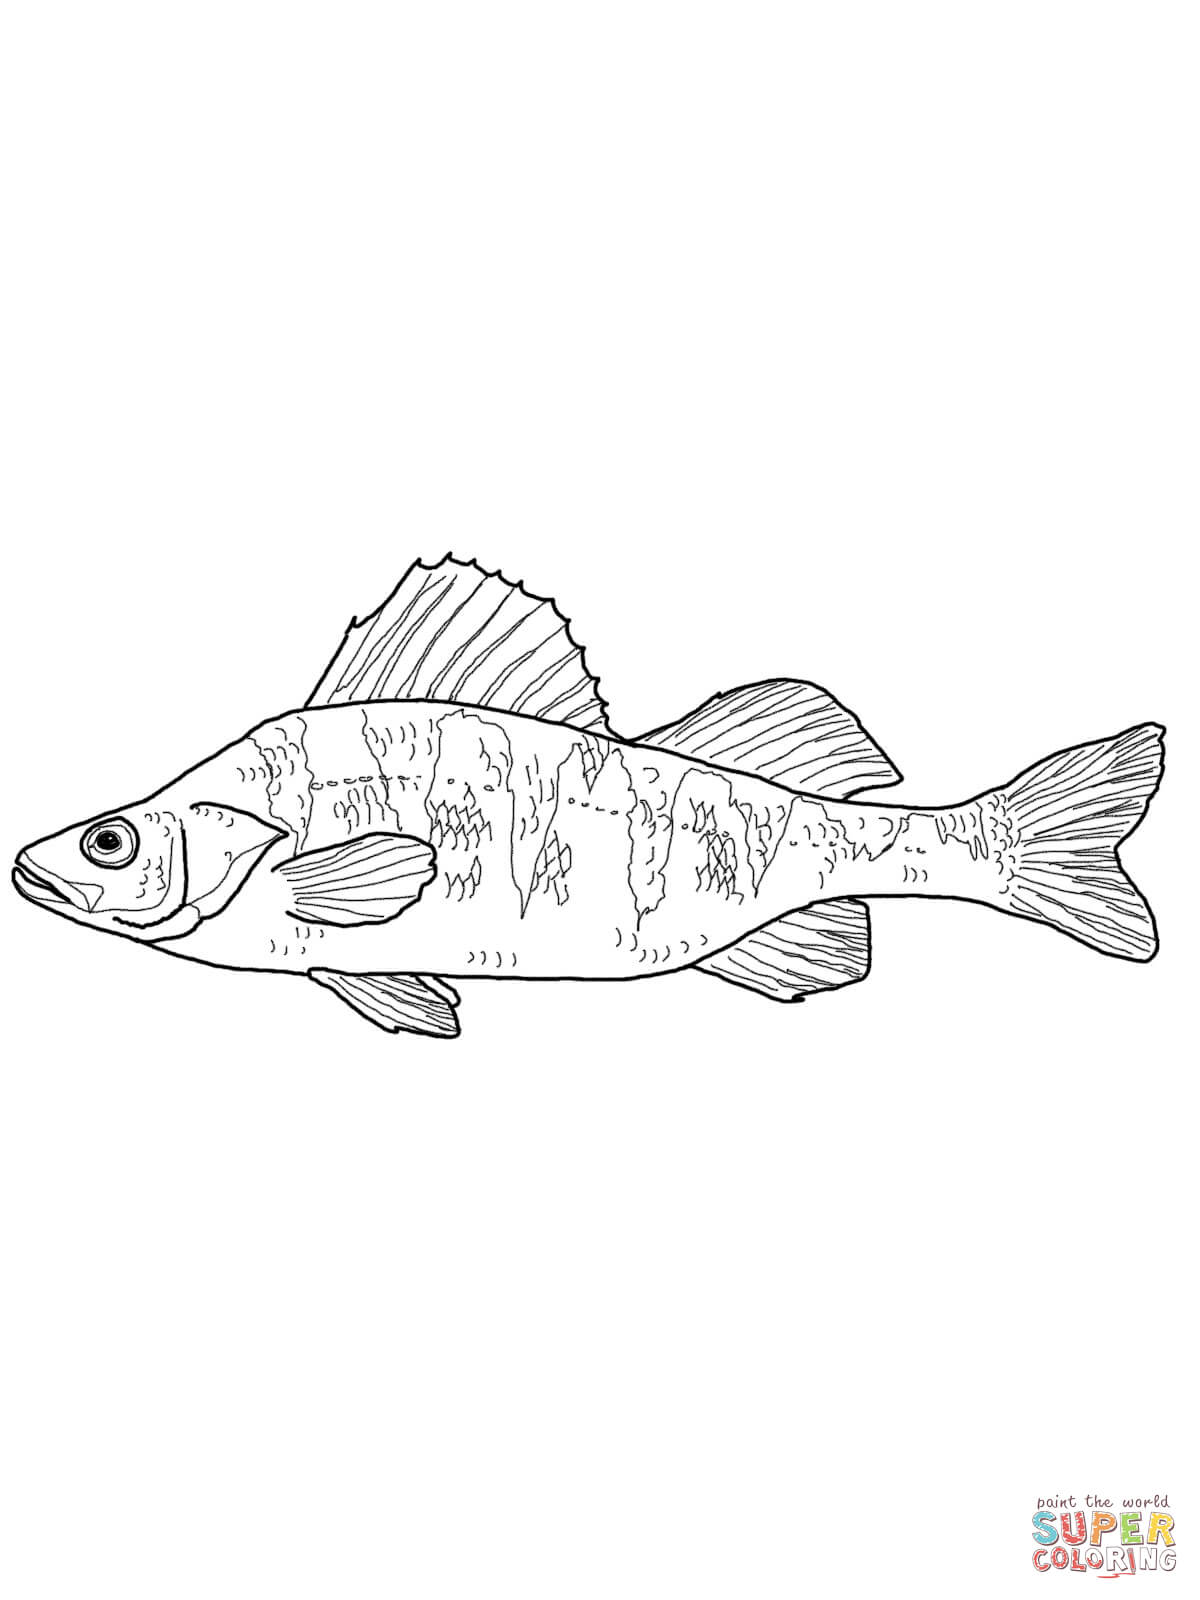 Maryland Yellow Perch Coloring Online